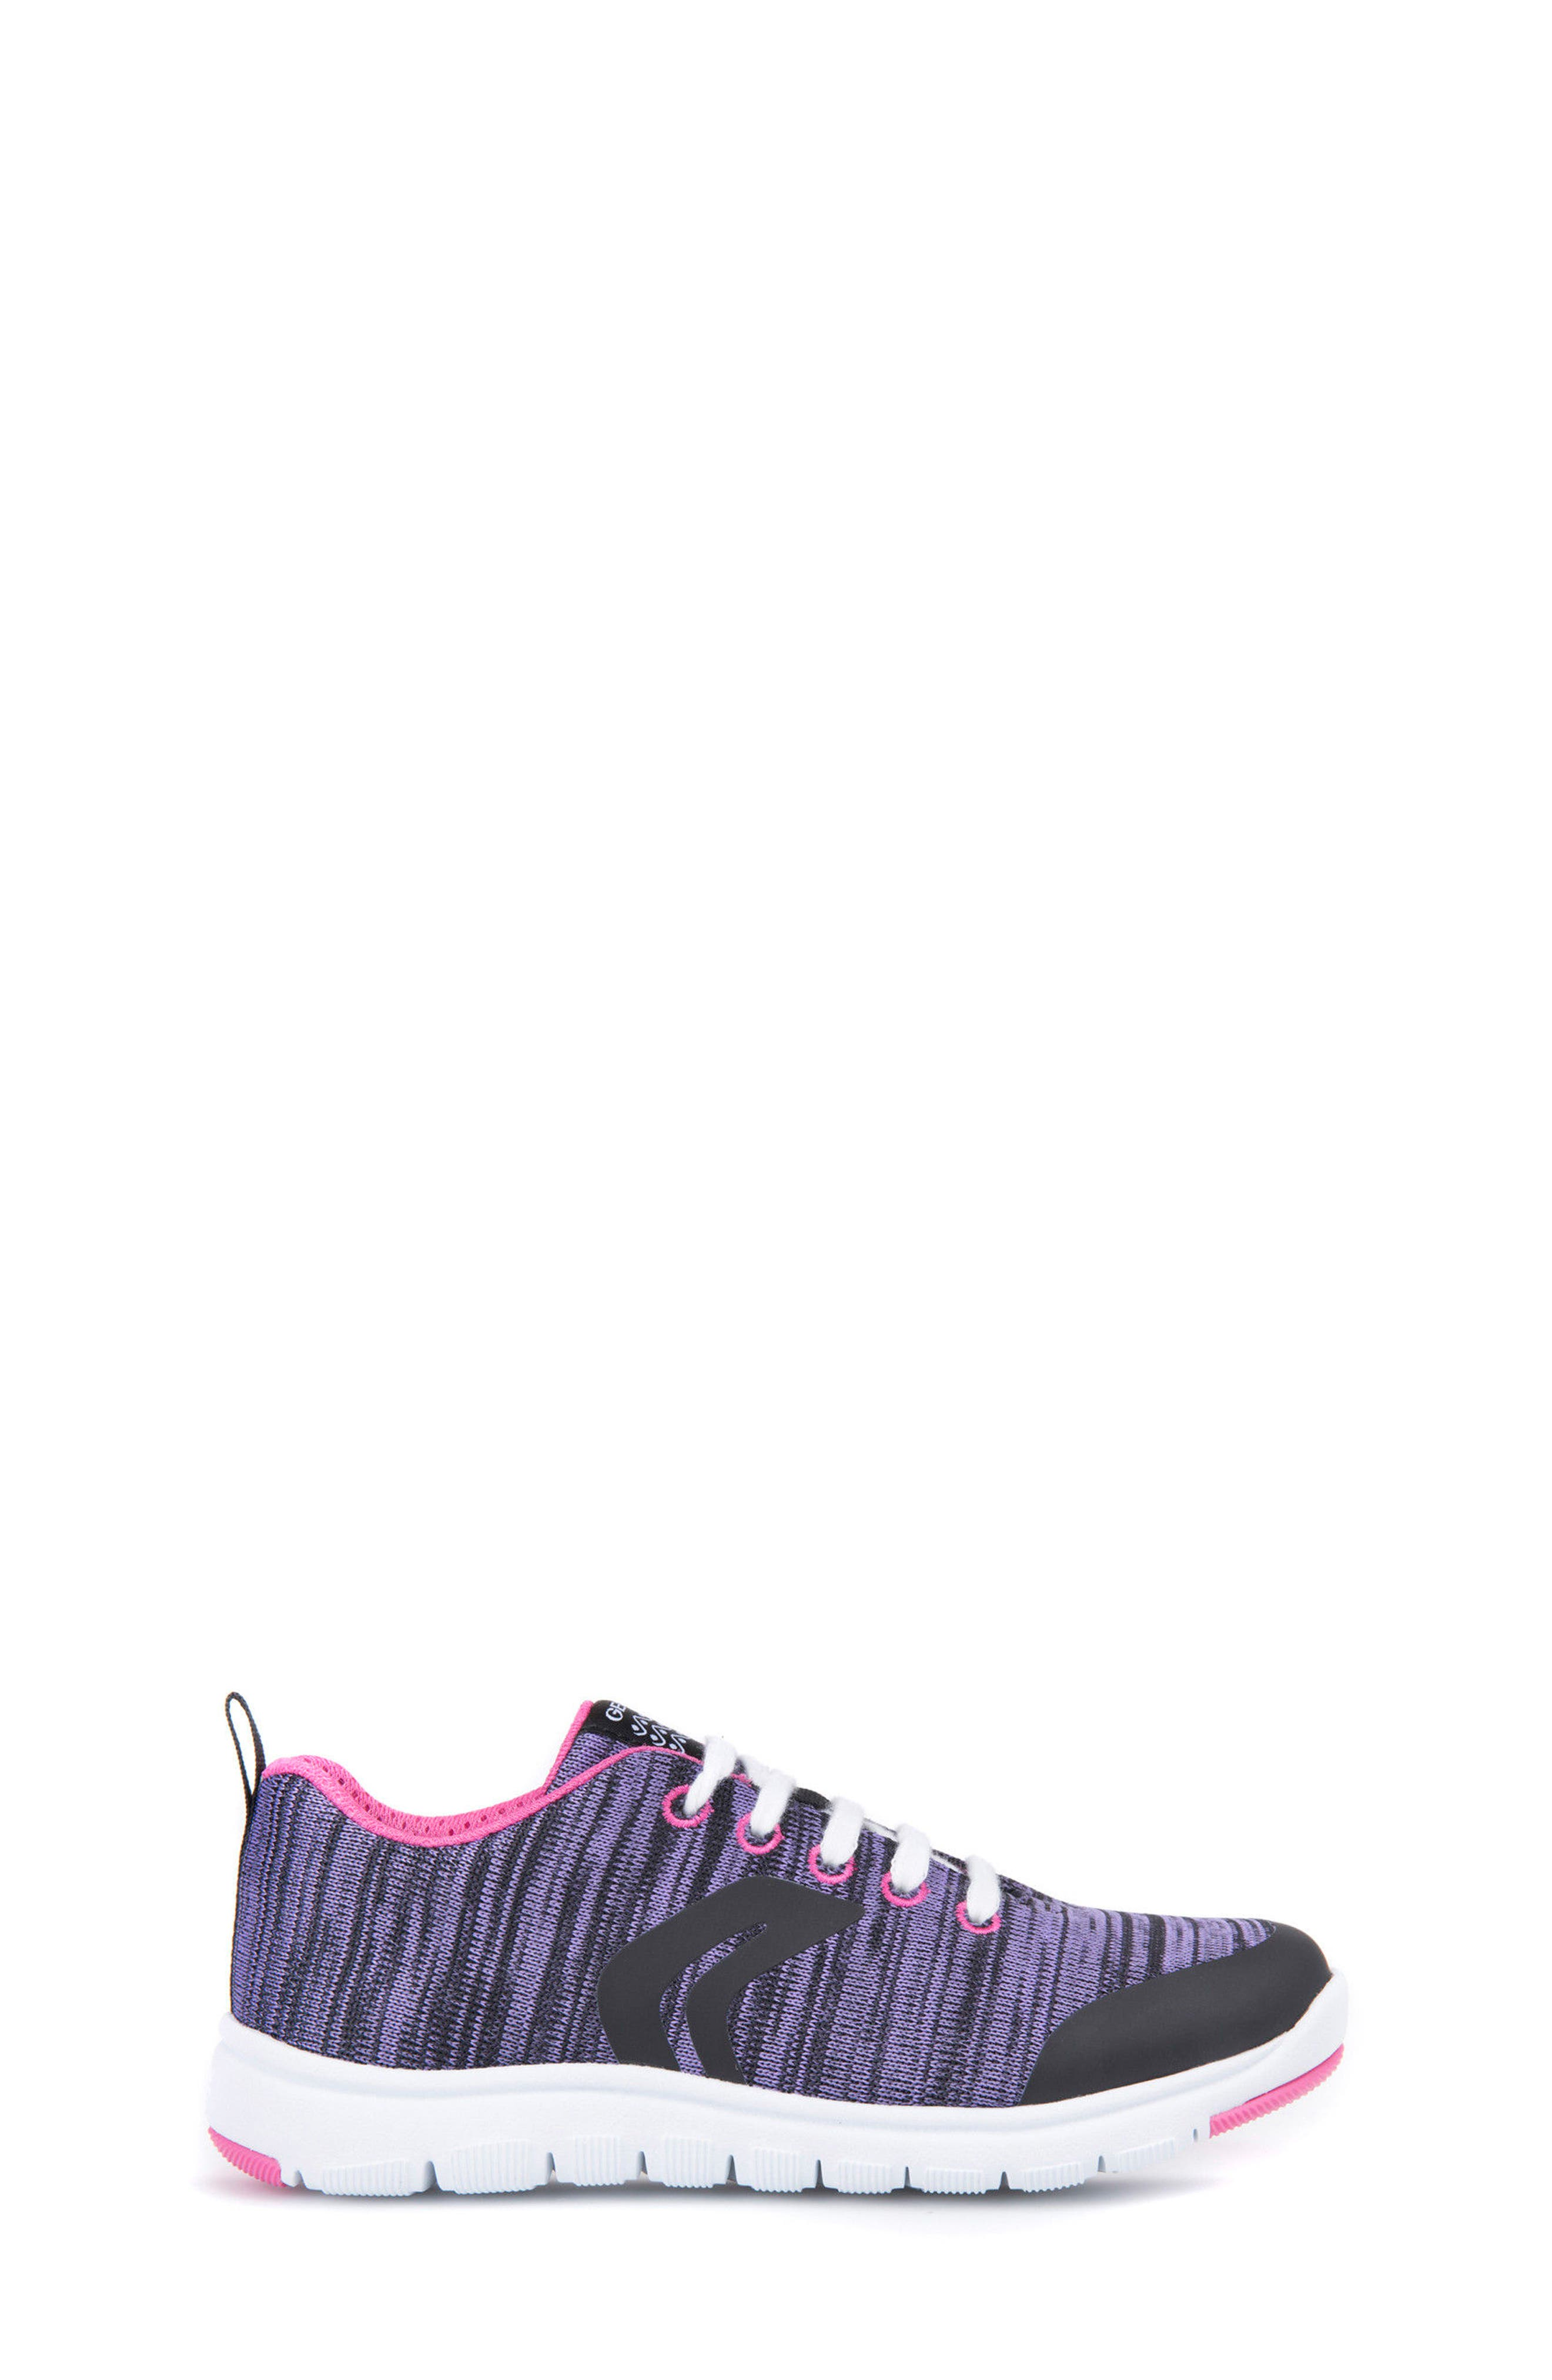 Xunday Performance Knit Low Top Sneaker,                             Alternate thumbnail 3, color,                             Lilac